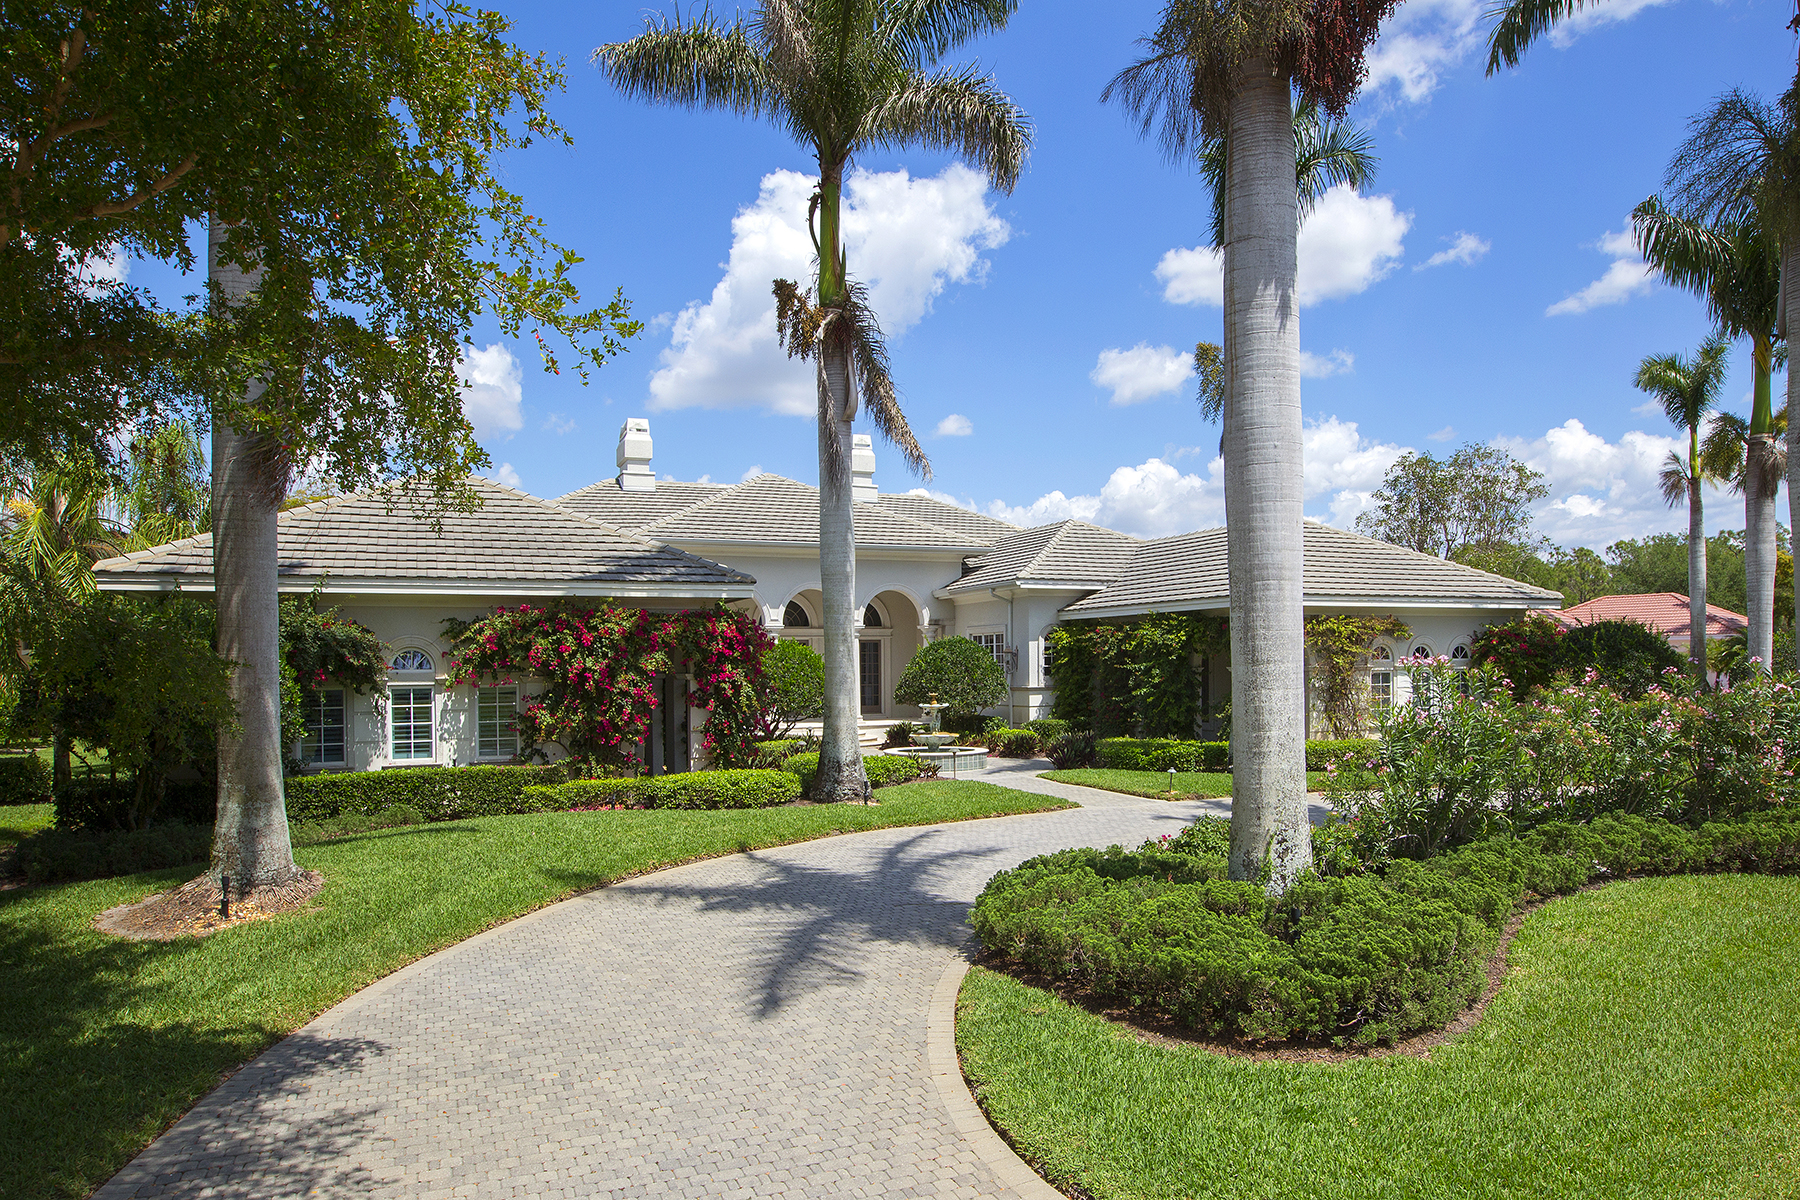 Single Family Homes for Sale at 9650 Lakebend Preserve Court, Estero, Florida 34135 United States